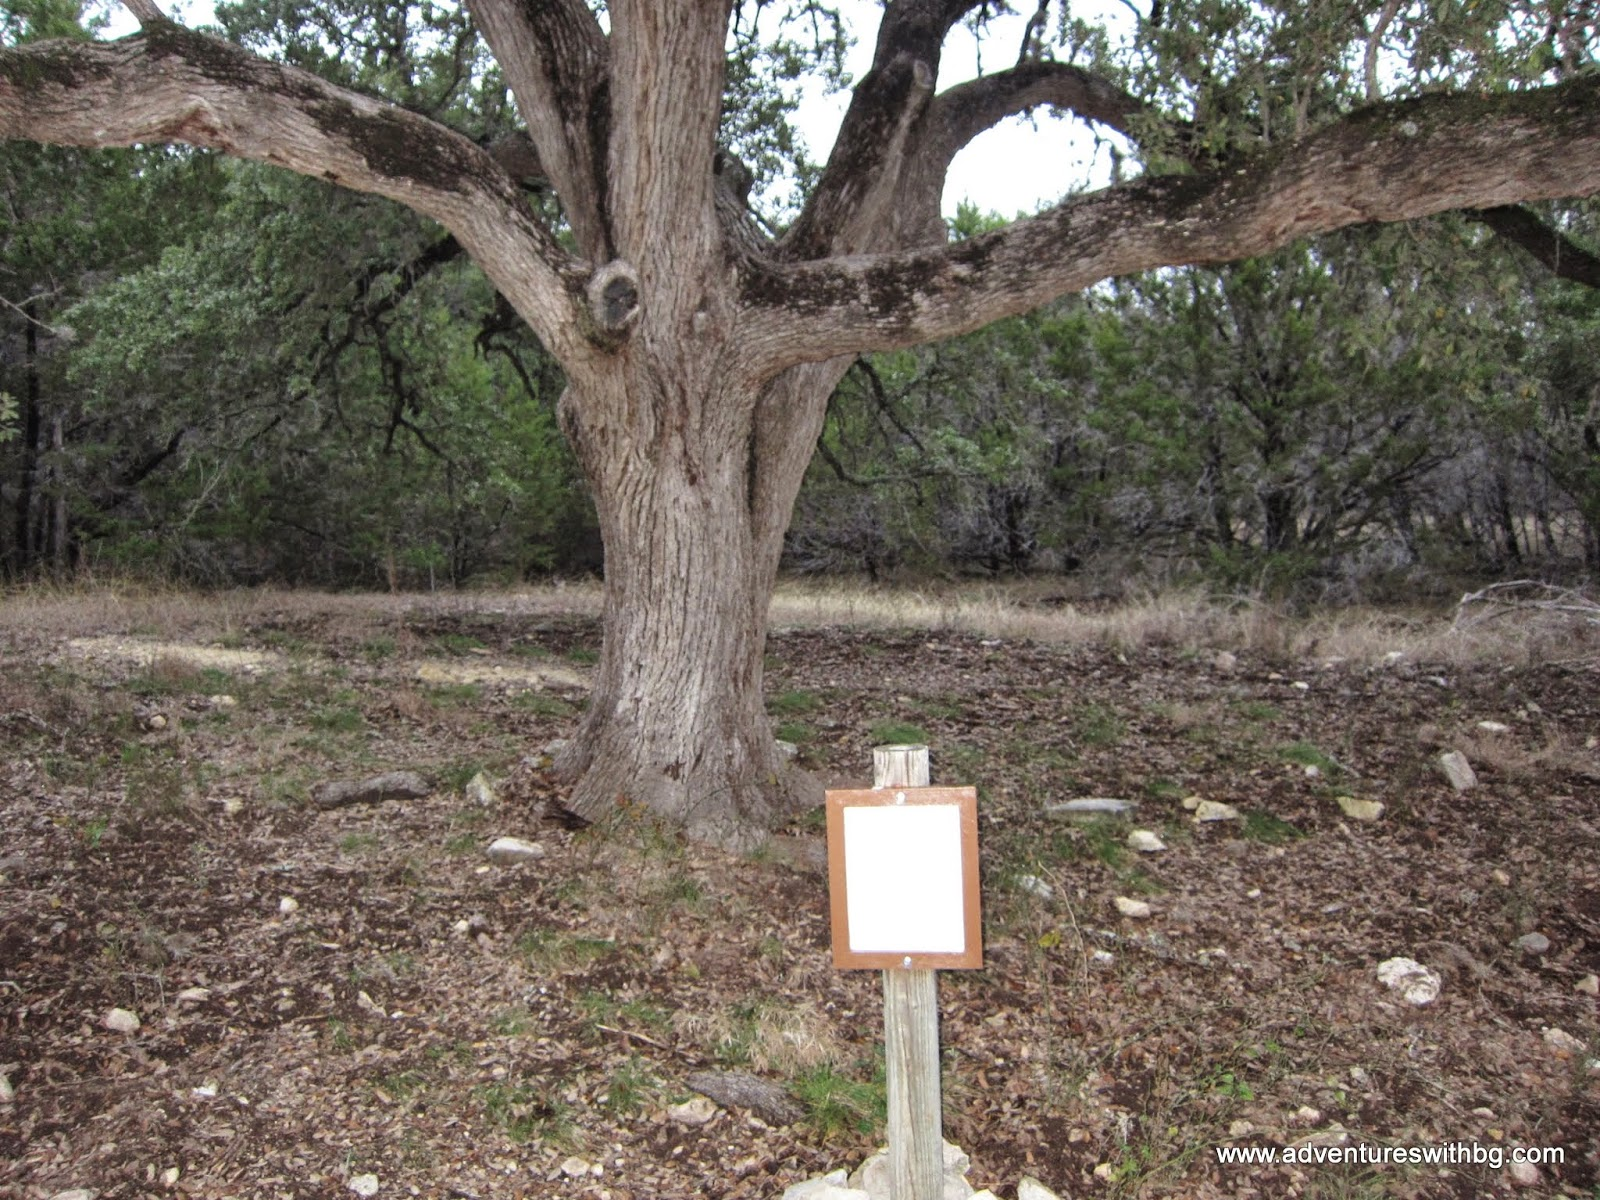 Make sure you stop by to learn a little more about oaks in the area.